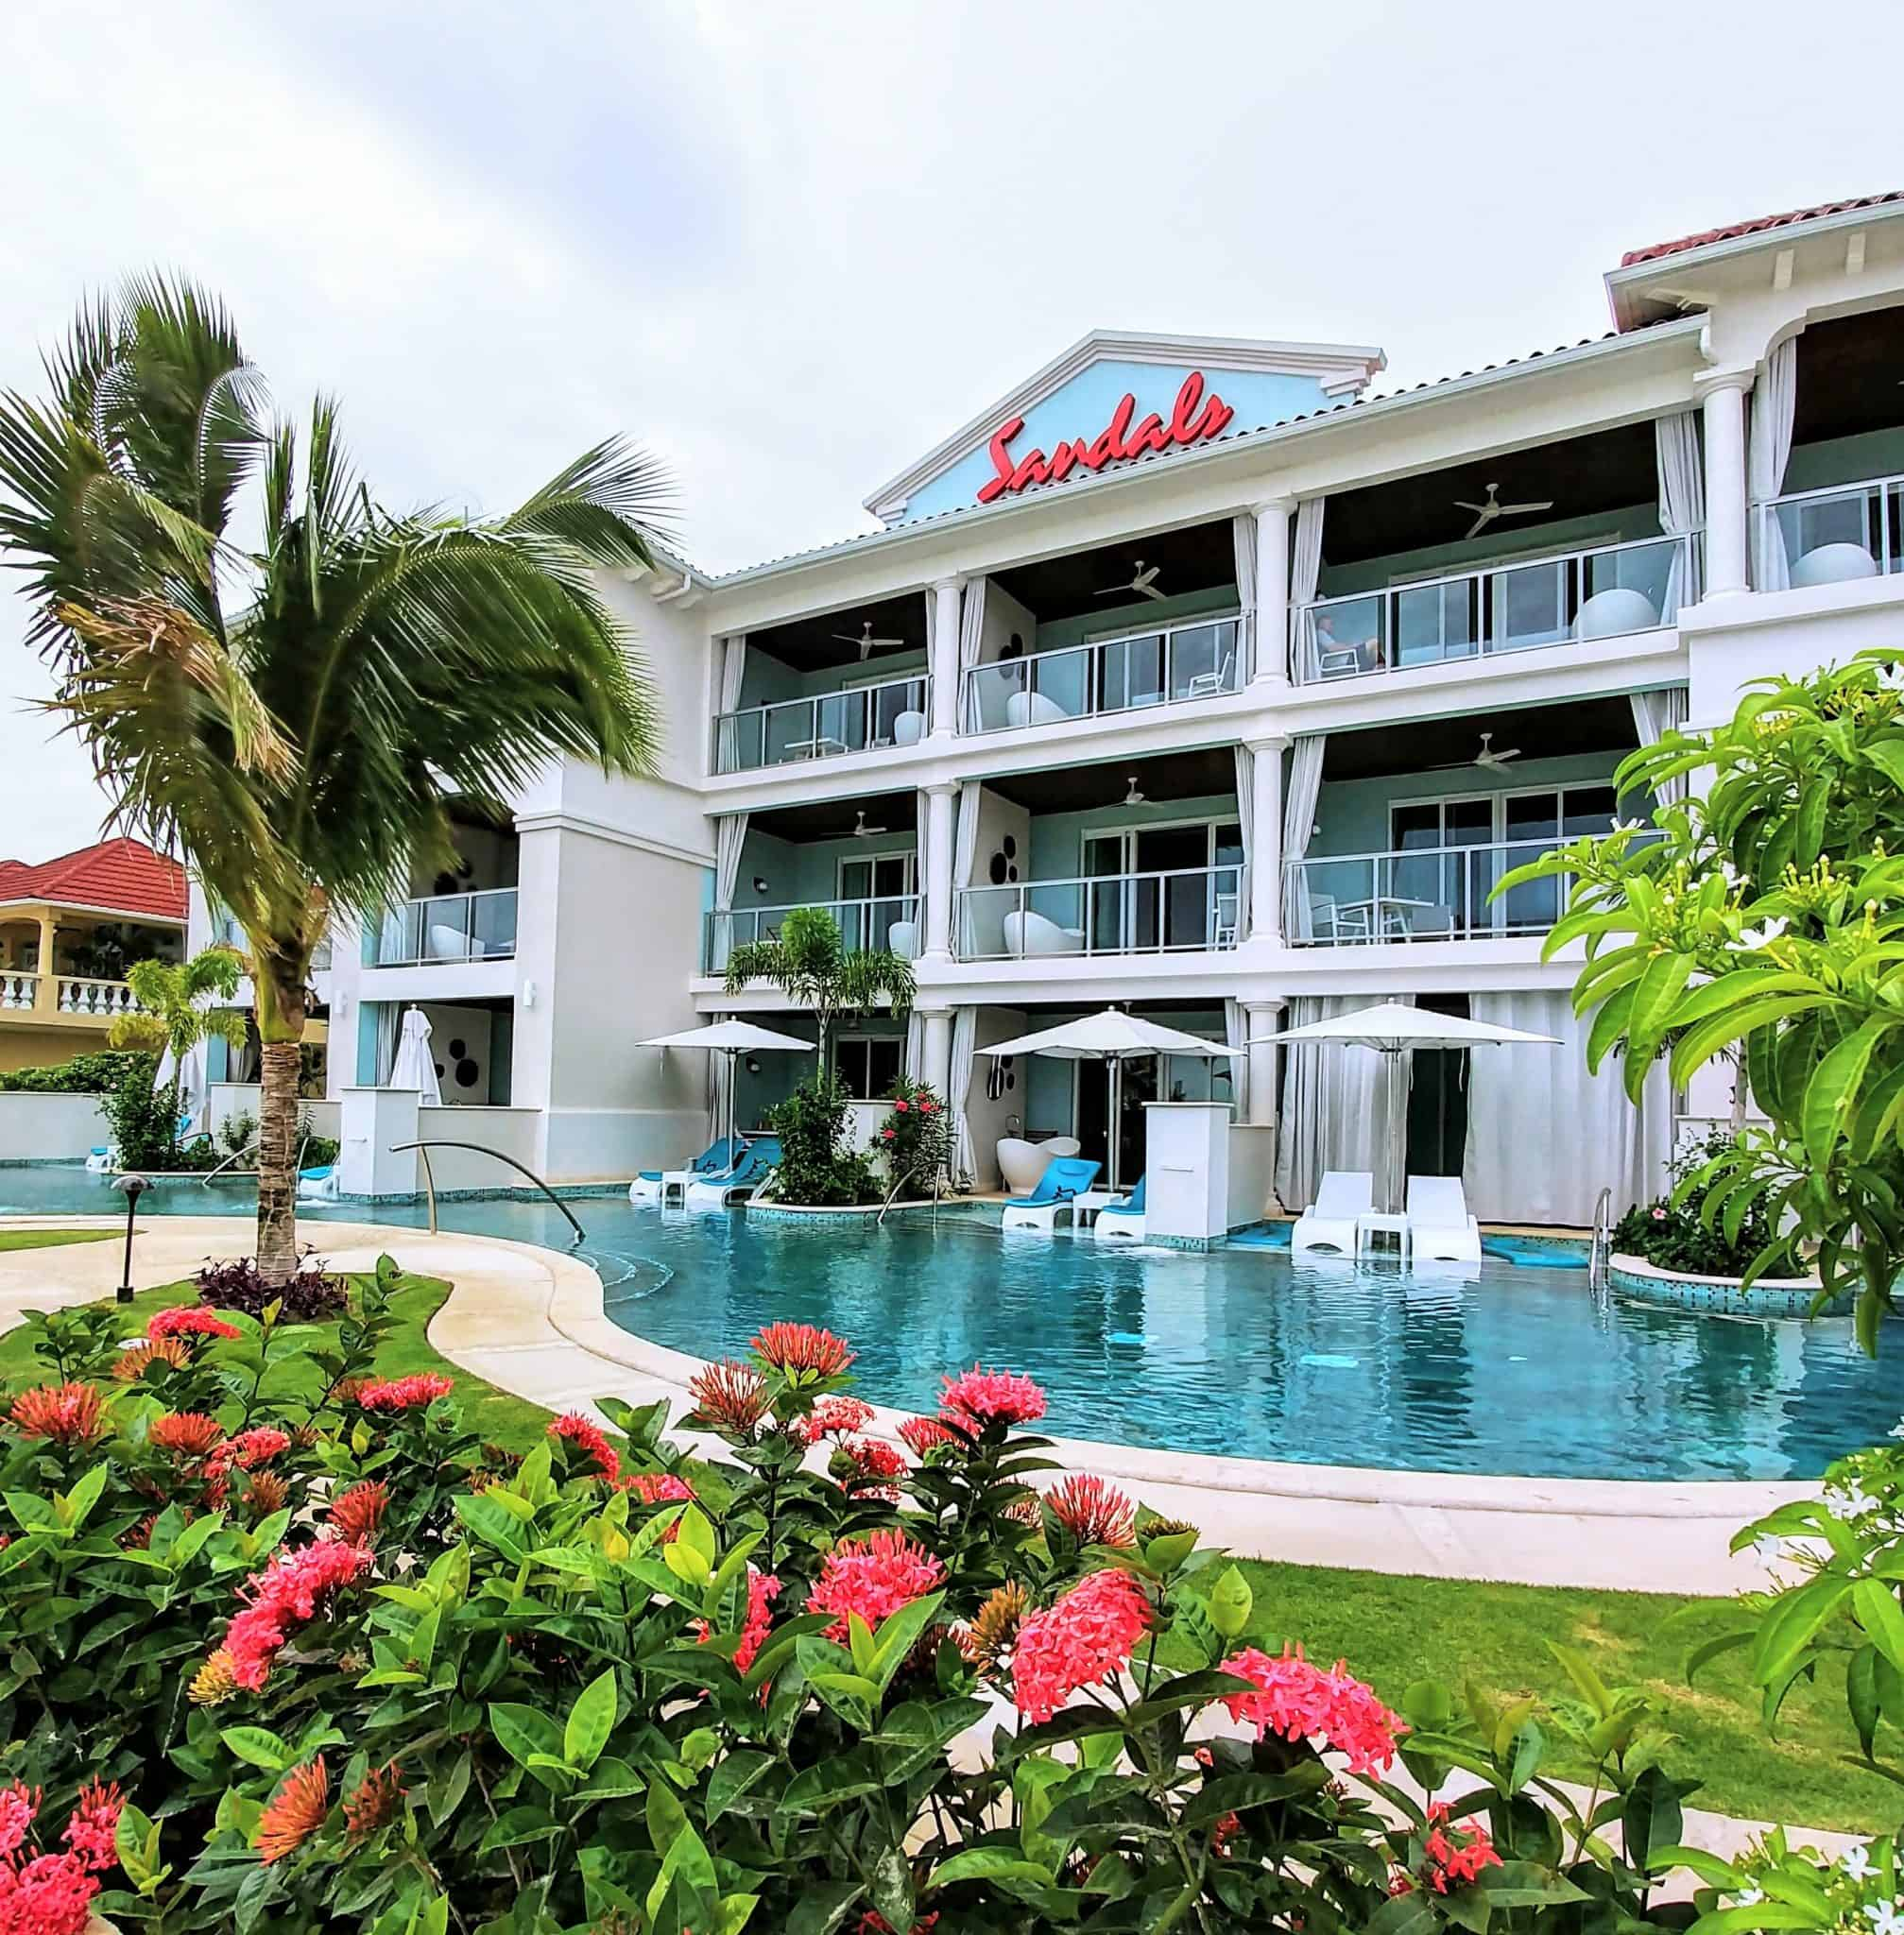 Luxury Couples Getaway - Sandals Montego Bay Jamaica Sandals resort with swim up pools from room with loungers and bathtubs on balcony